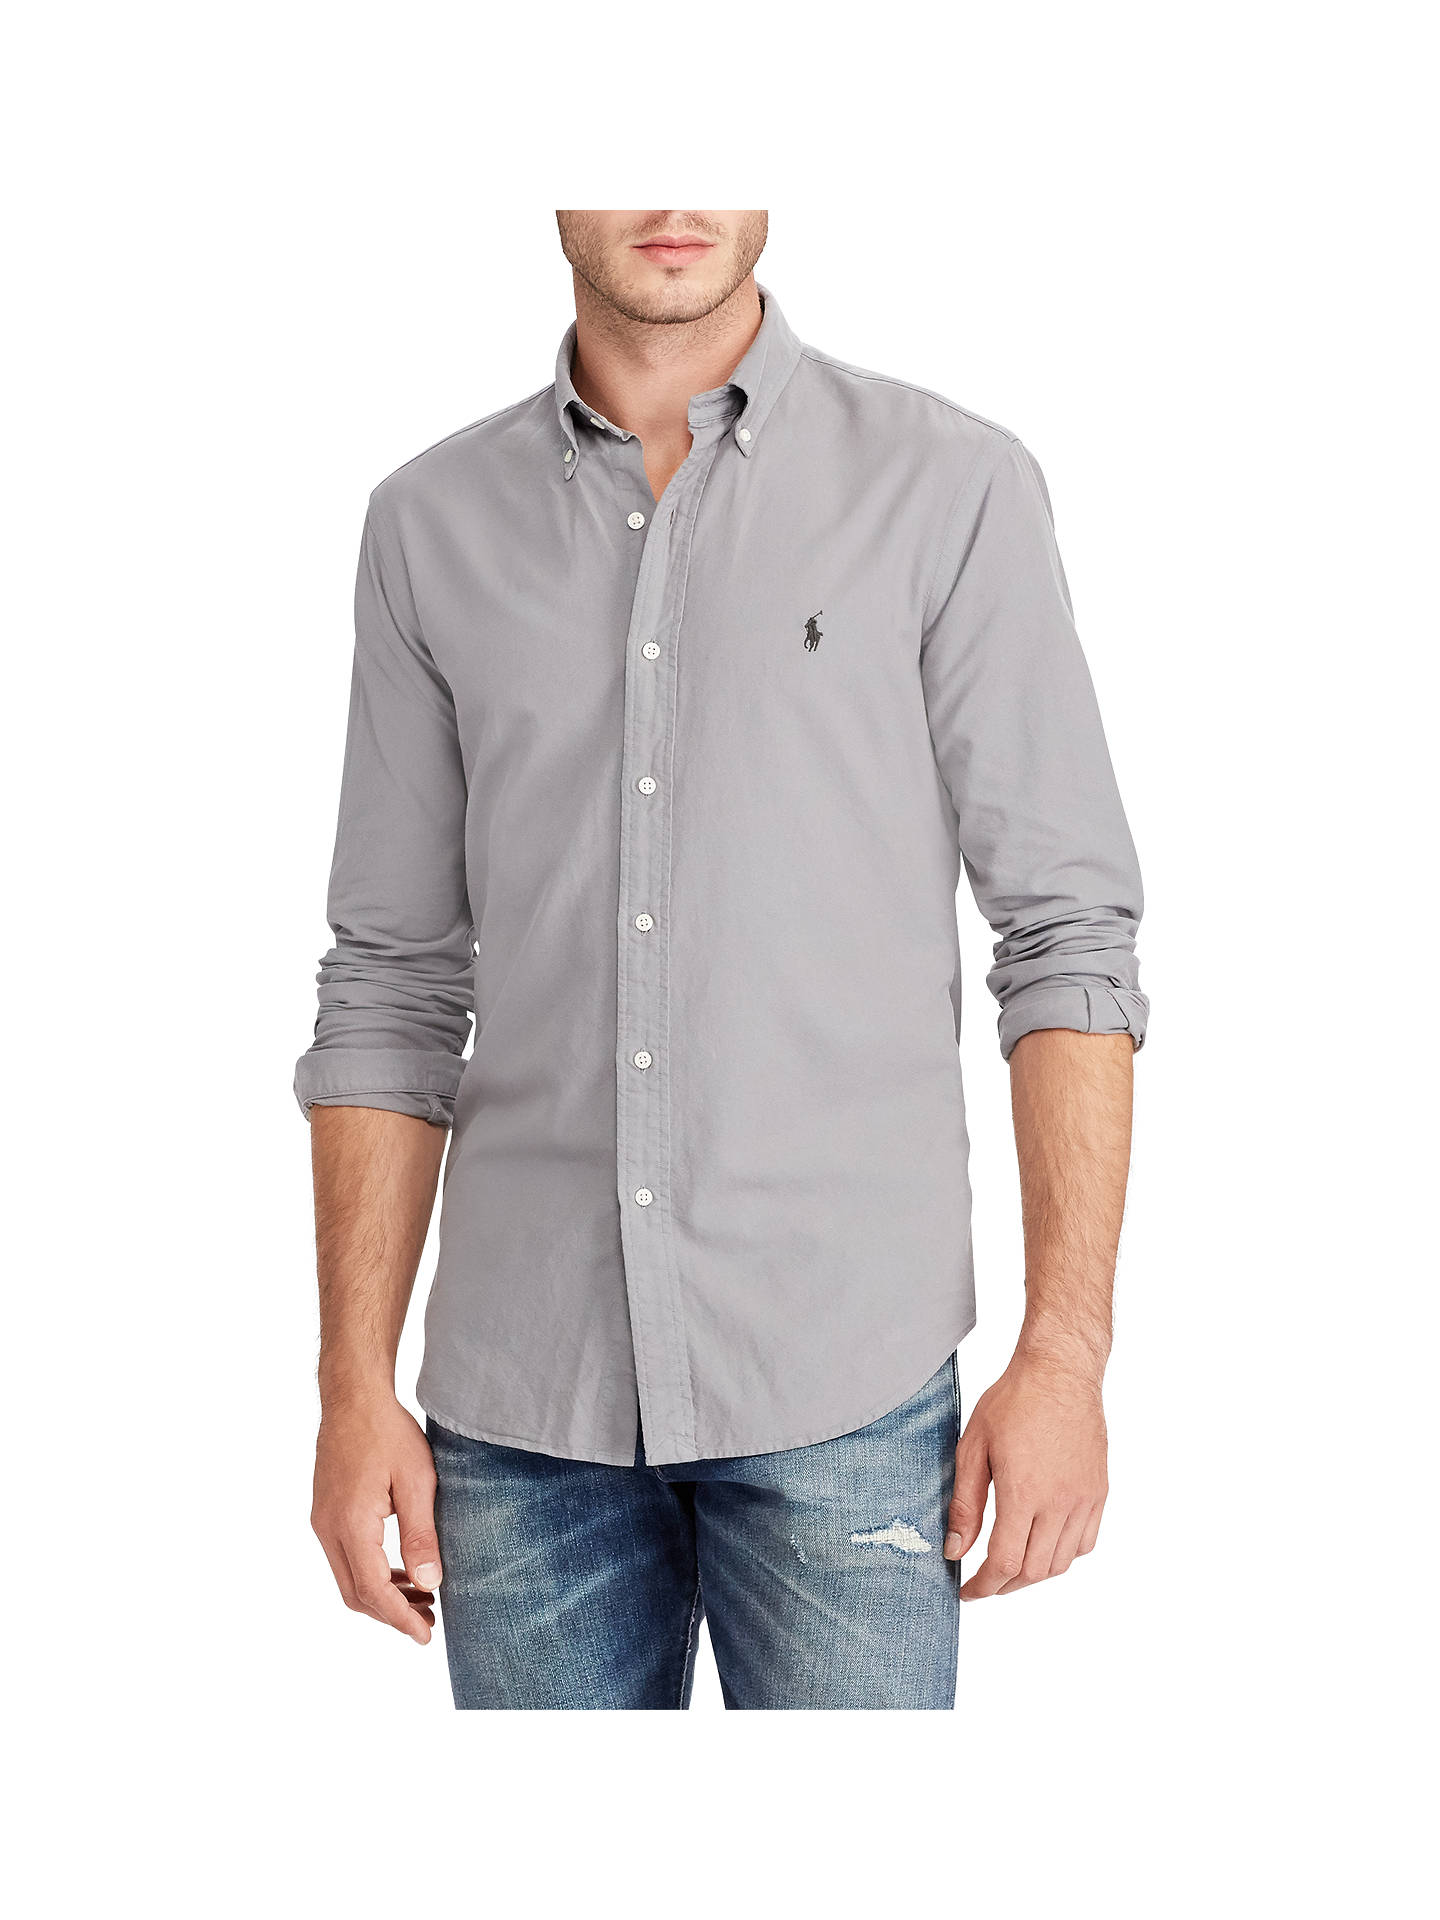 a45e17ca Buy Polo Ralph Lauren Cotton Oxford Slim Fit Shirt, Grey, S Online at  johnlewis ...